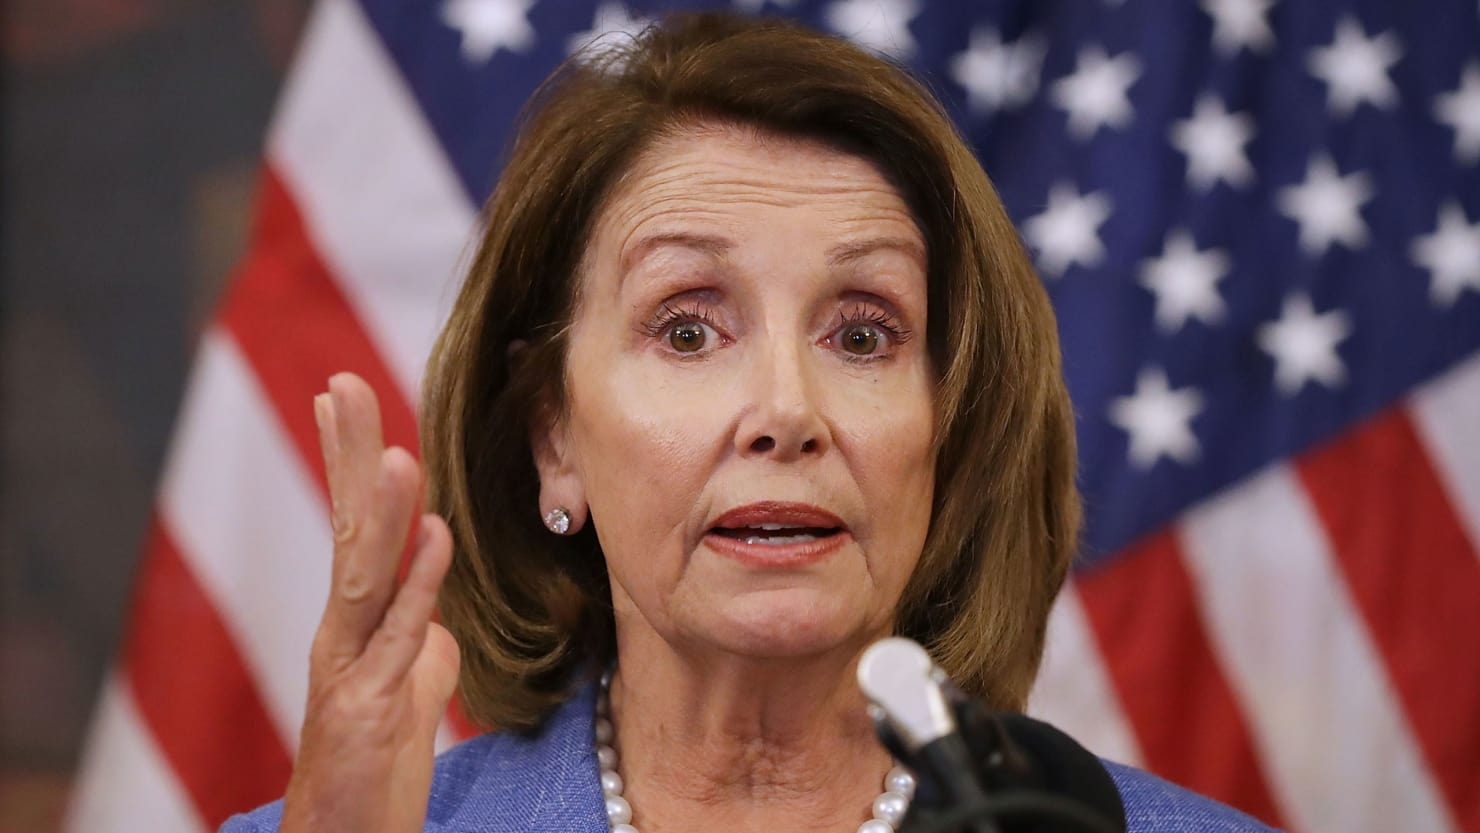 Pelosi Changes Her Tune on Tax Cut Crumbs We Love When People Get a Bonus VIDEO